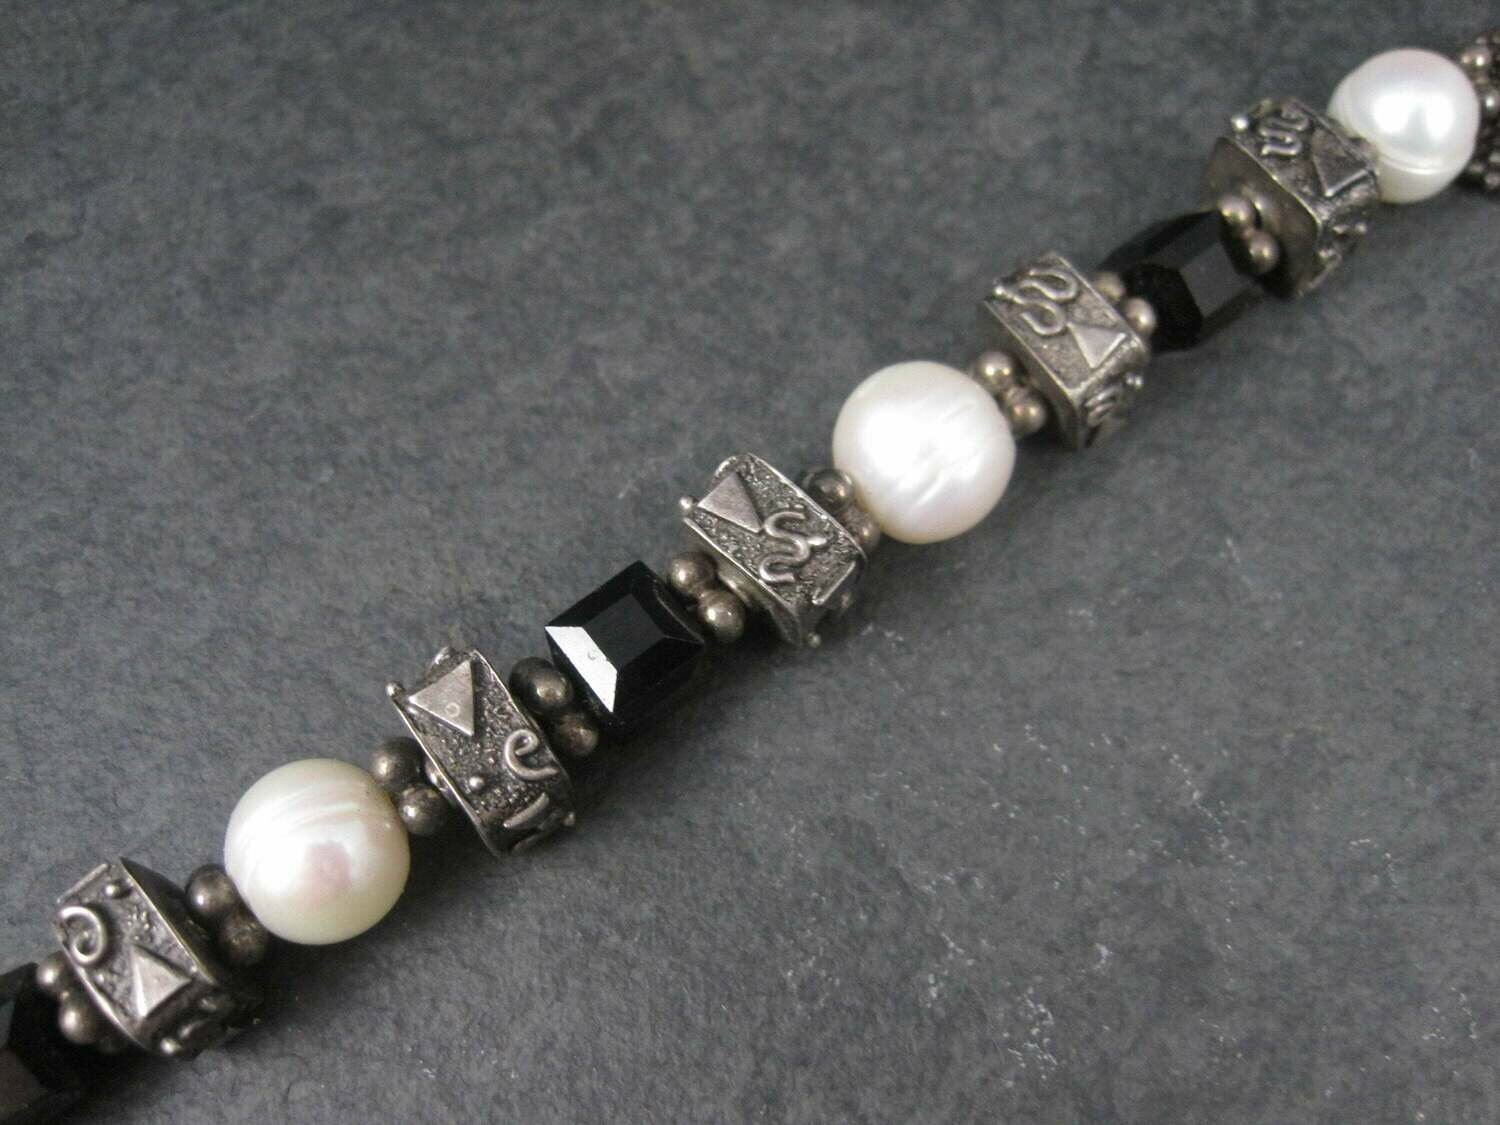 Heavy Vintage Black and White Sterling Pearl Bracelet 7.5 Inches